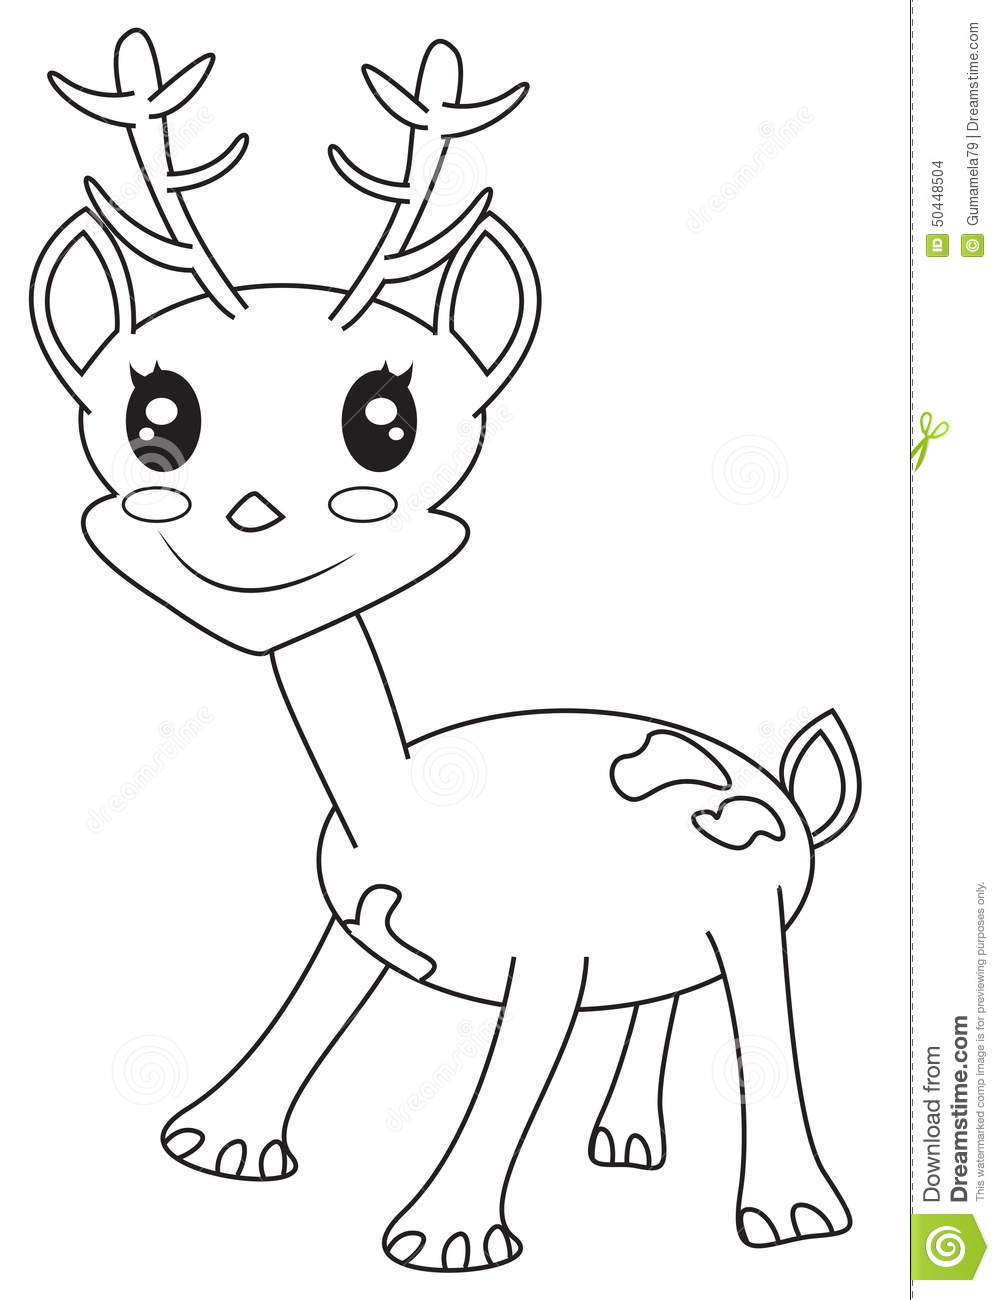 Cute Little Deer Coloring Page Stock Illustration